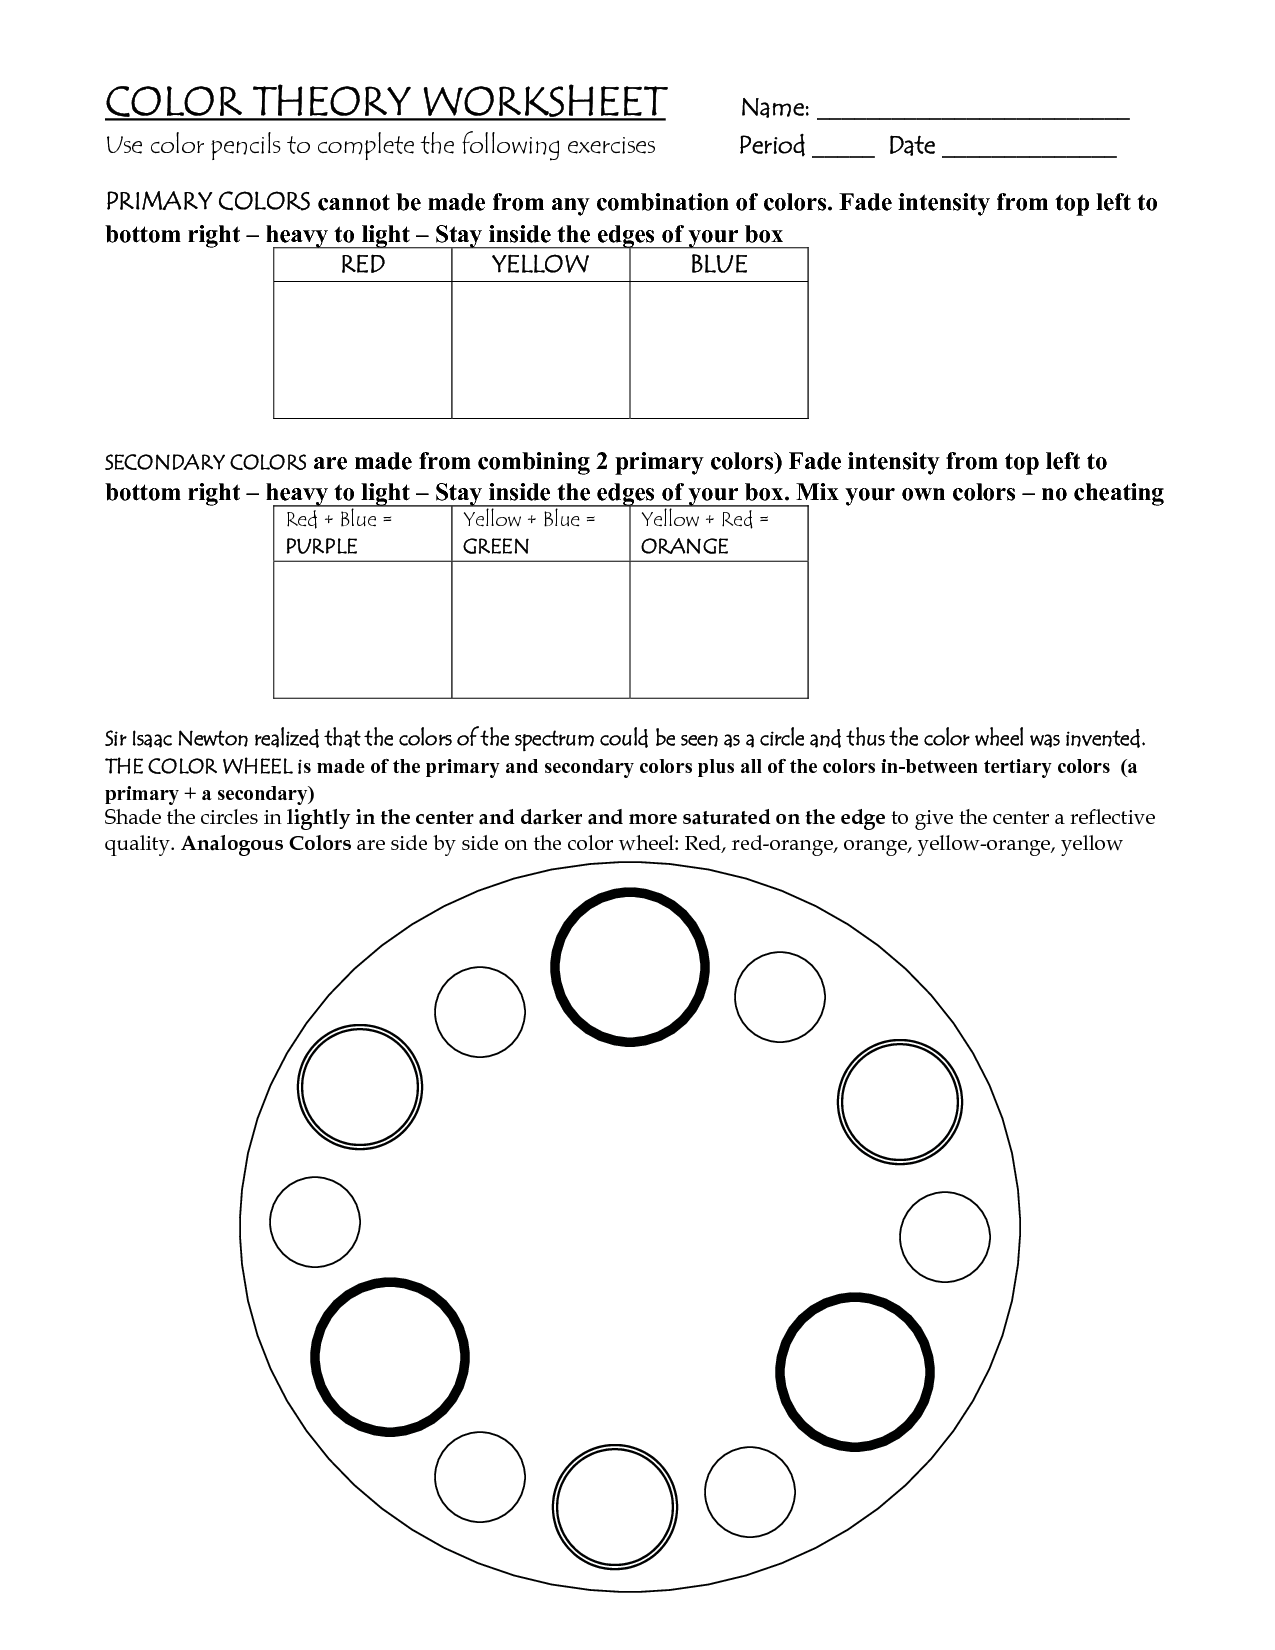 19 Best Images Of Color Theory Worksheets